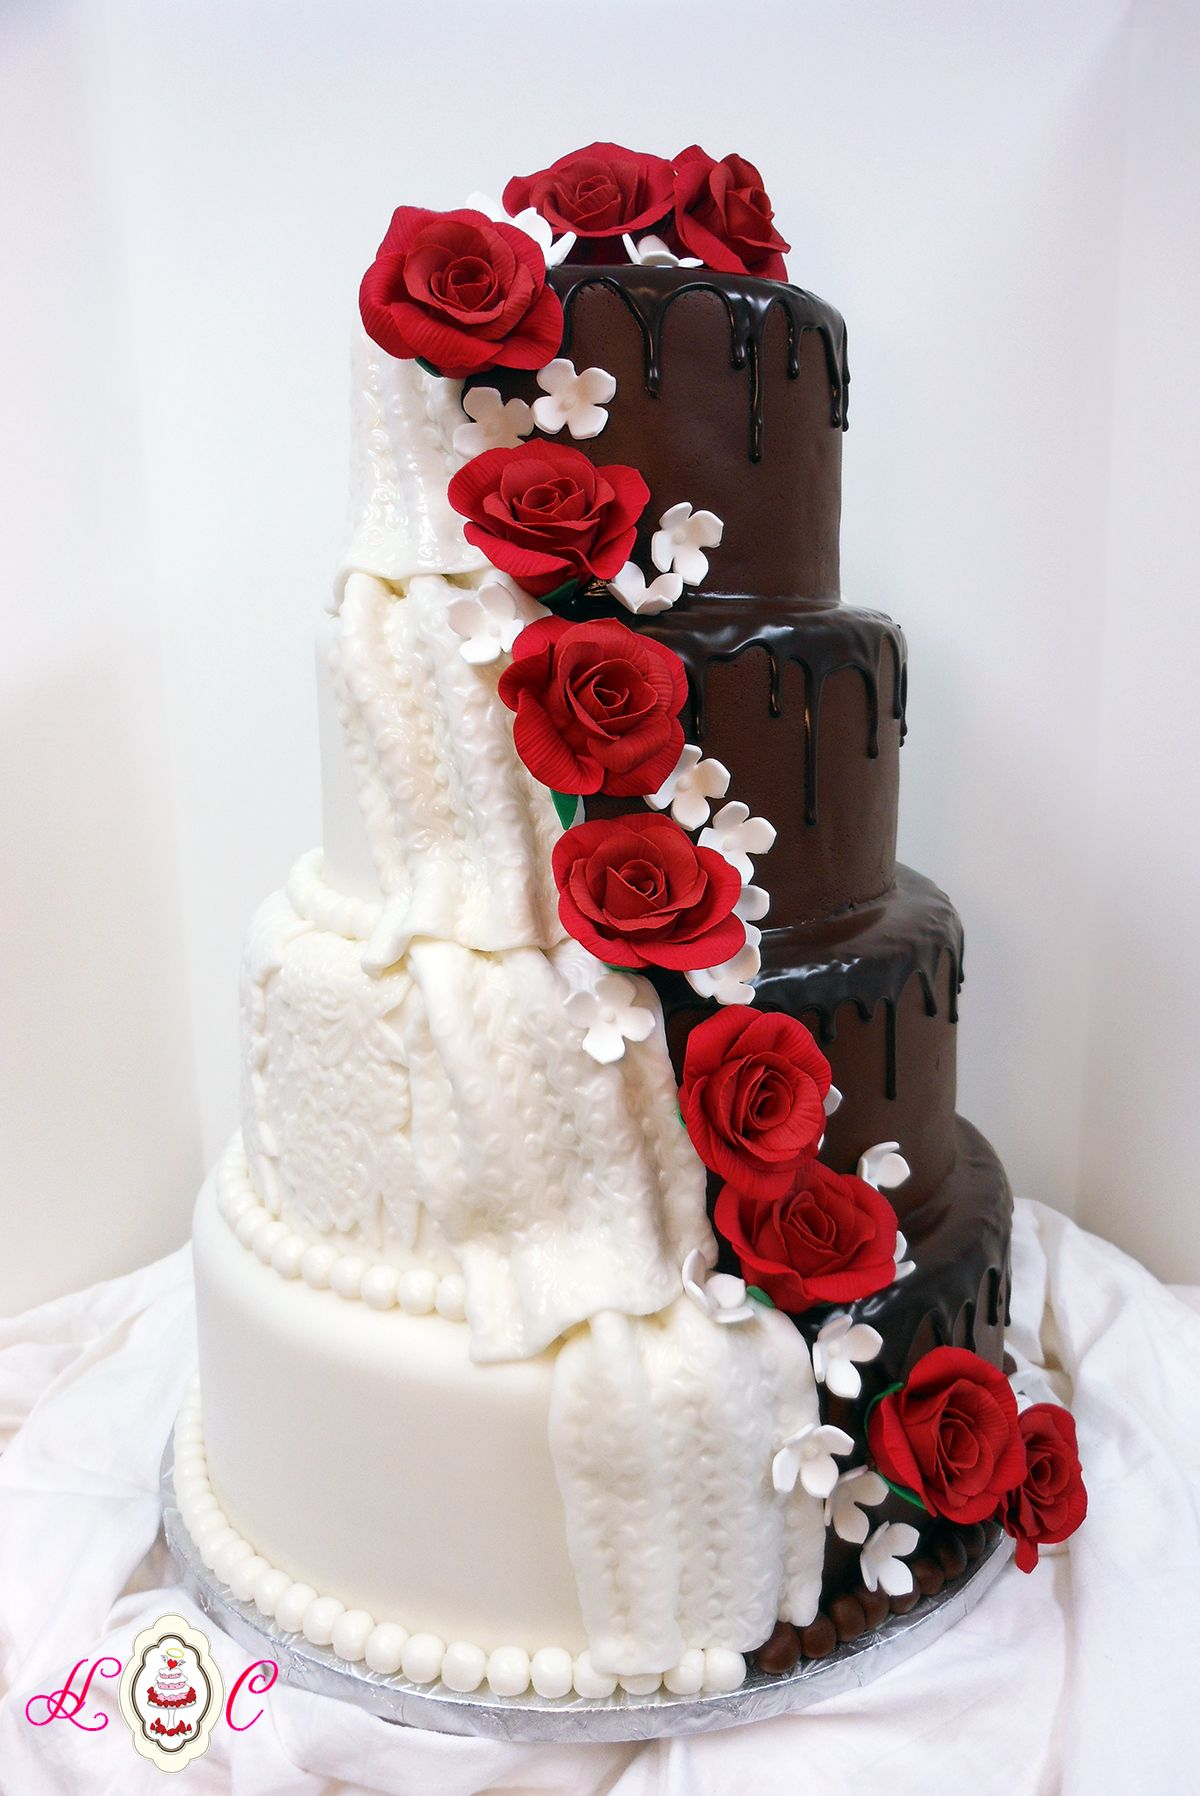 Bride & Groom Mixed Wedding Cake with Red Rose Cascade | Vowel ...